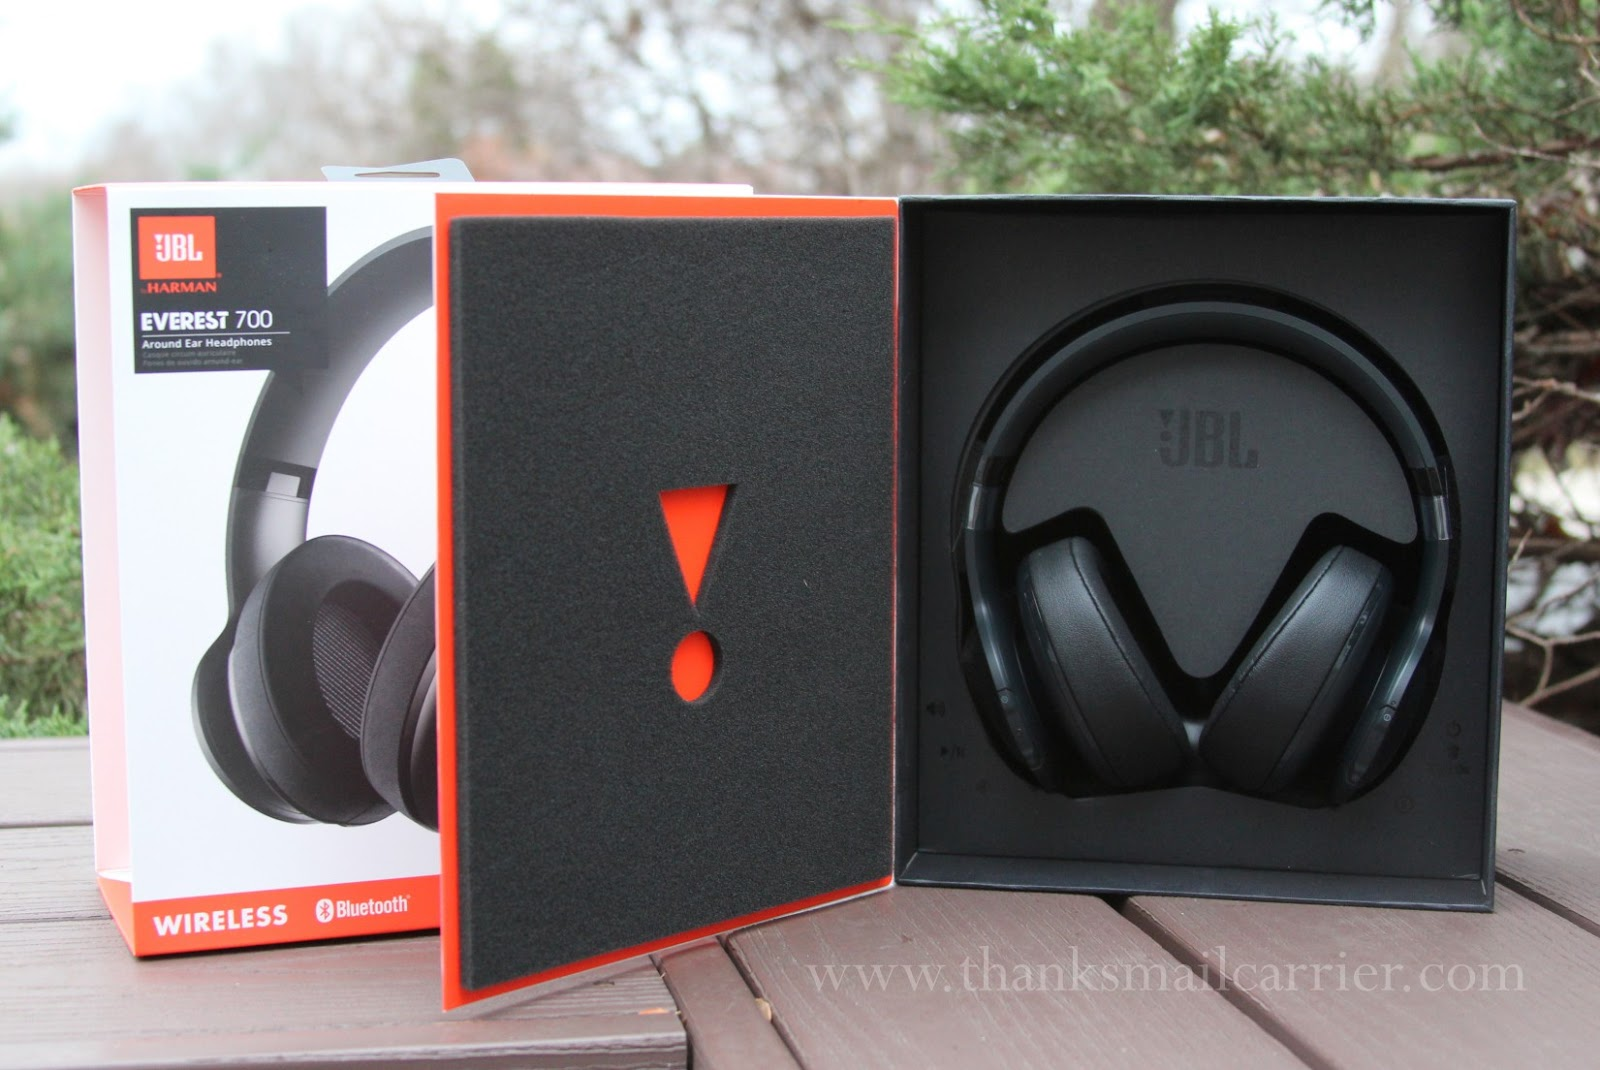 JBL Everest 700 around ear headphones